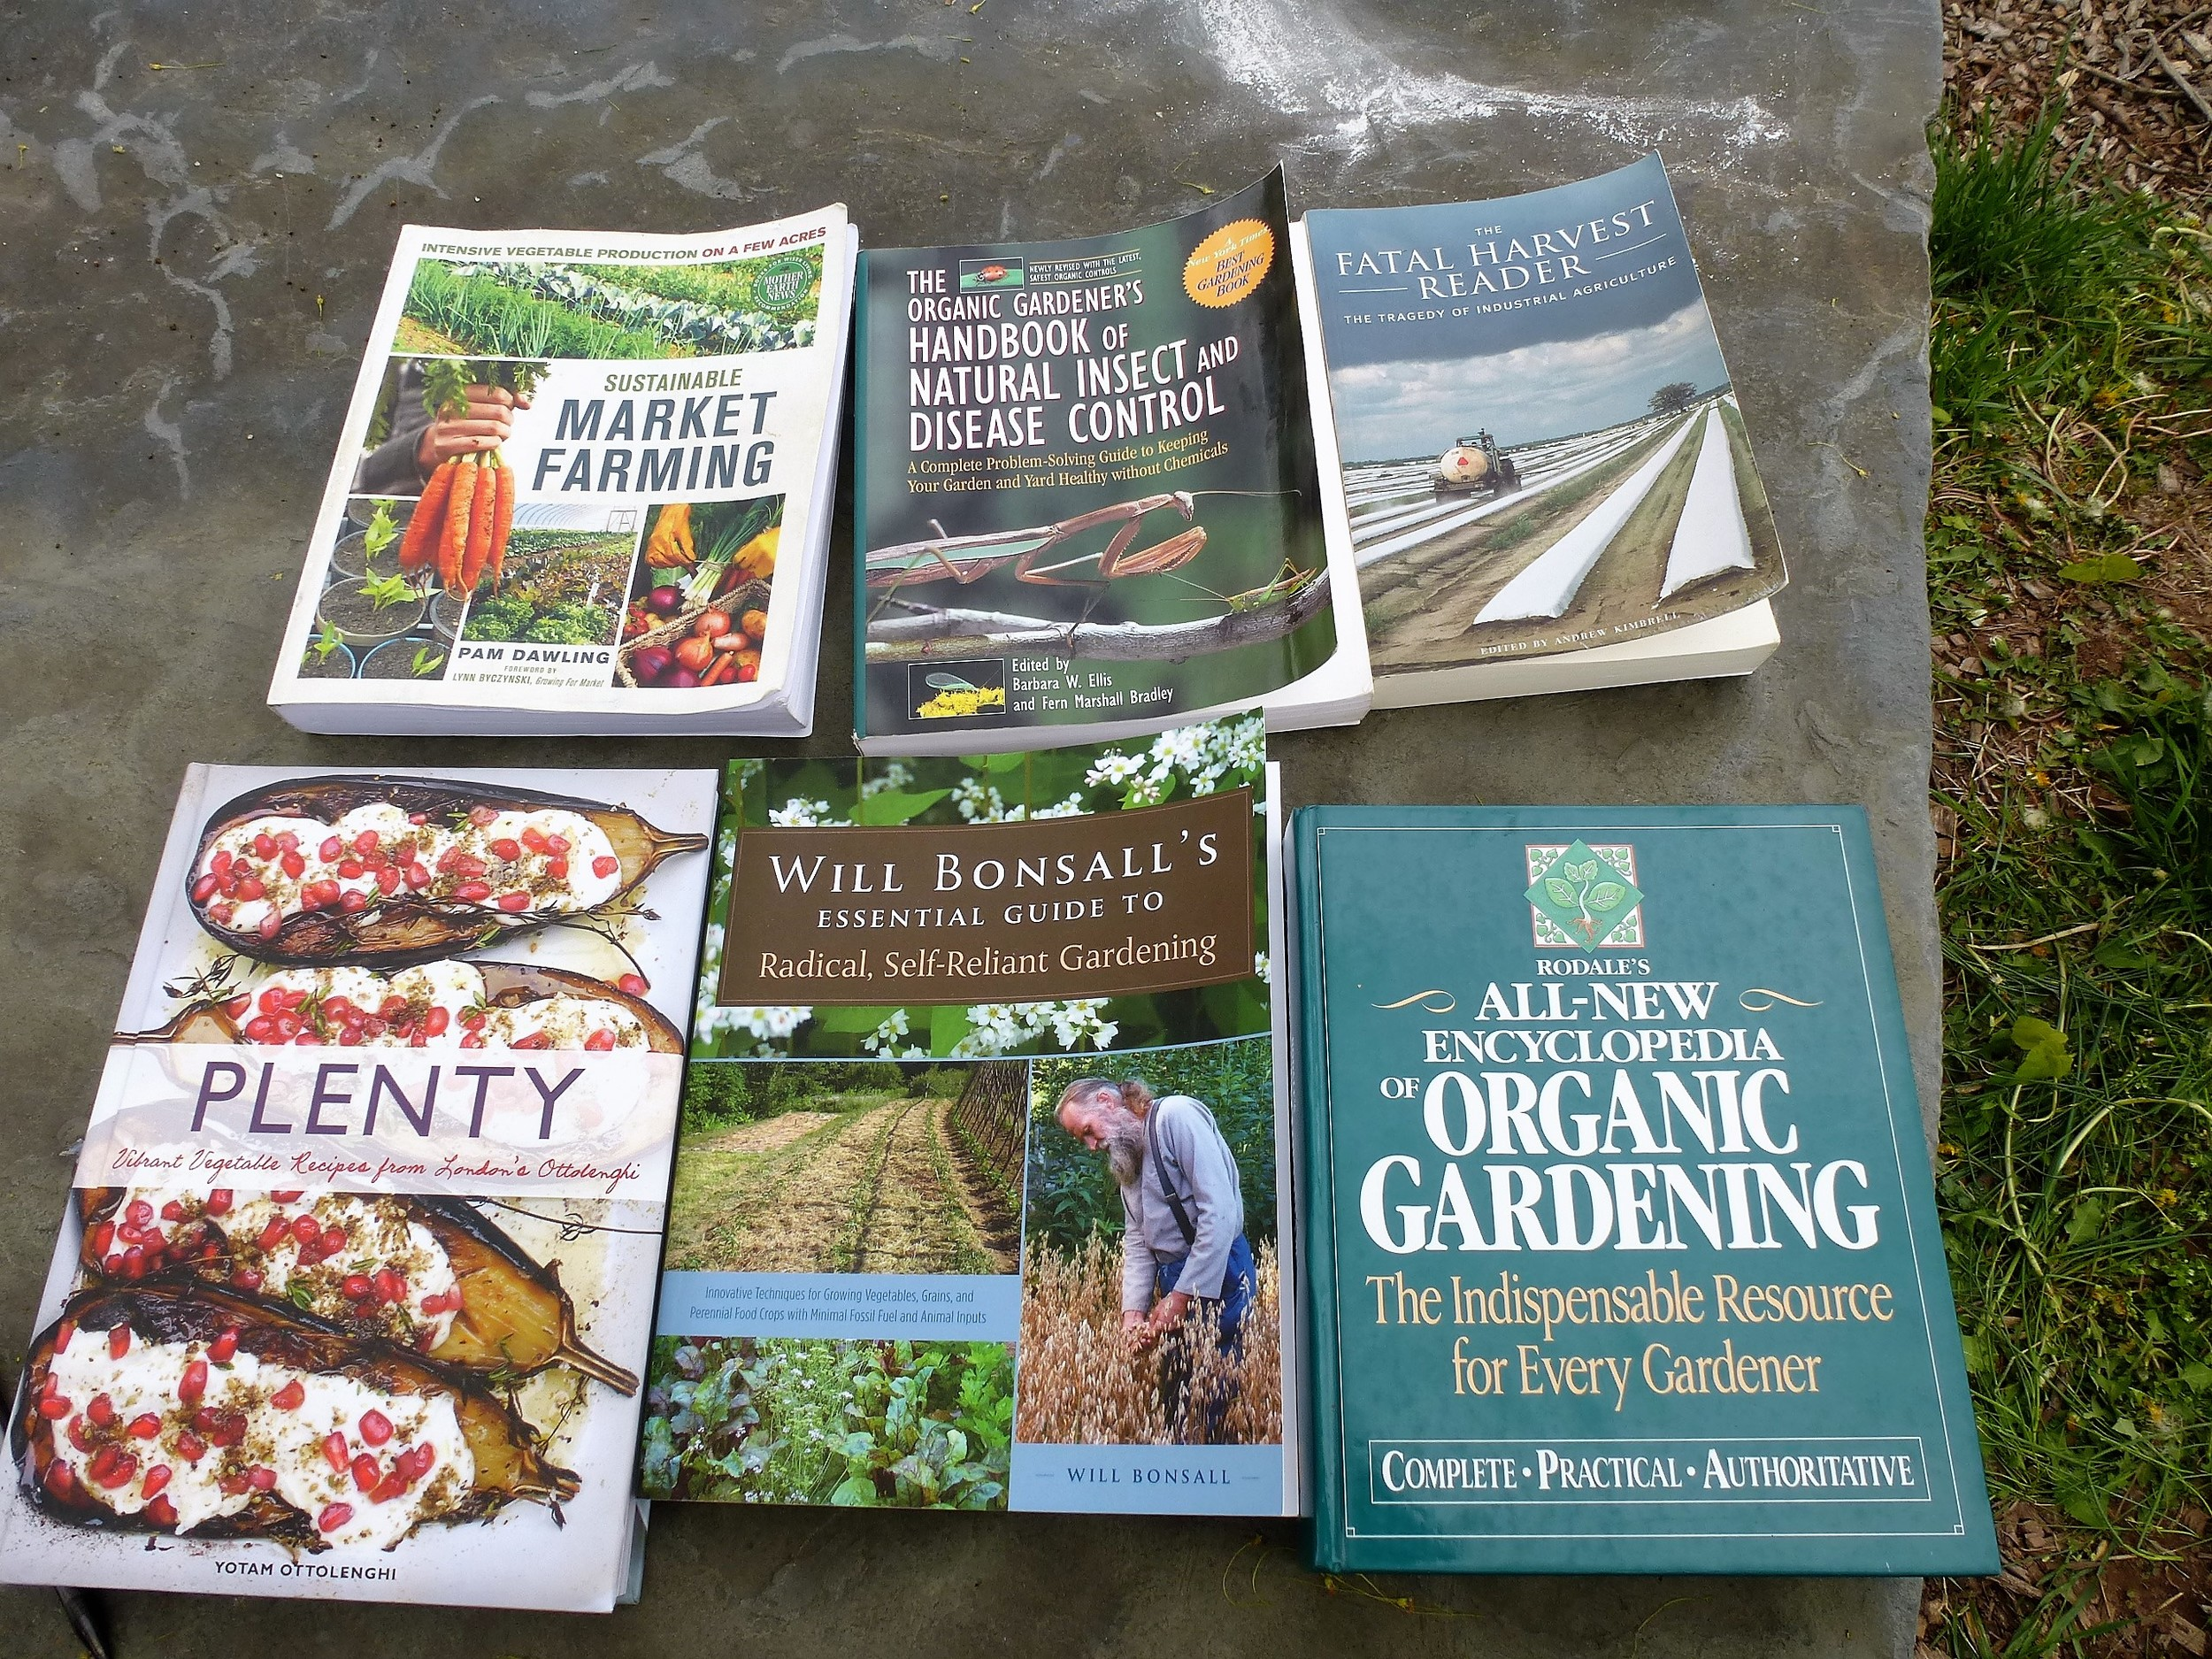 A few good books and resources recommended by Jamie Sims